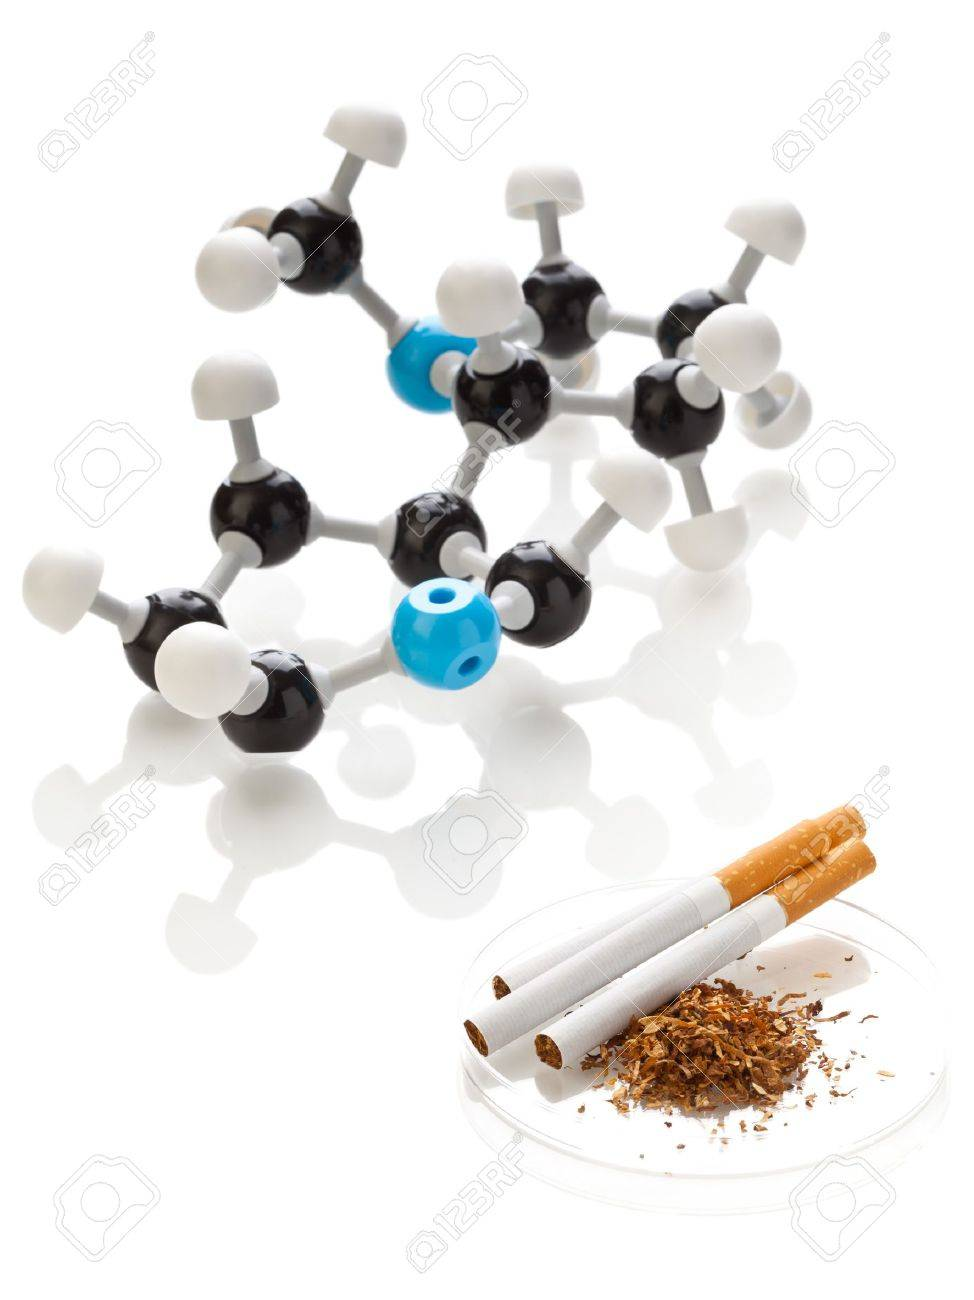 Model of a nicotine molecule with tobacco and cigarettes over white background Stock Photo - 11838057